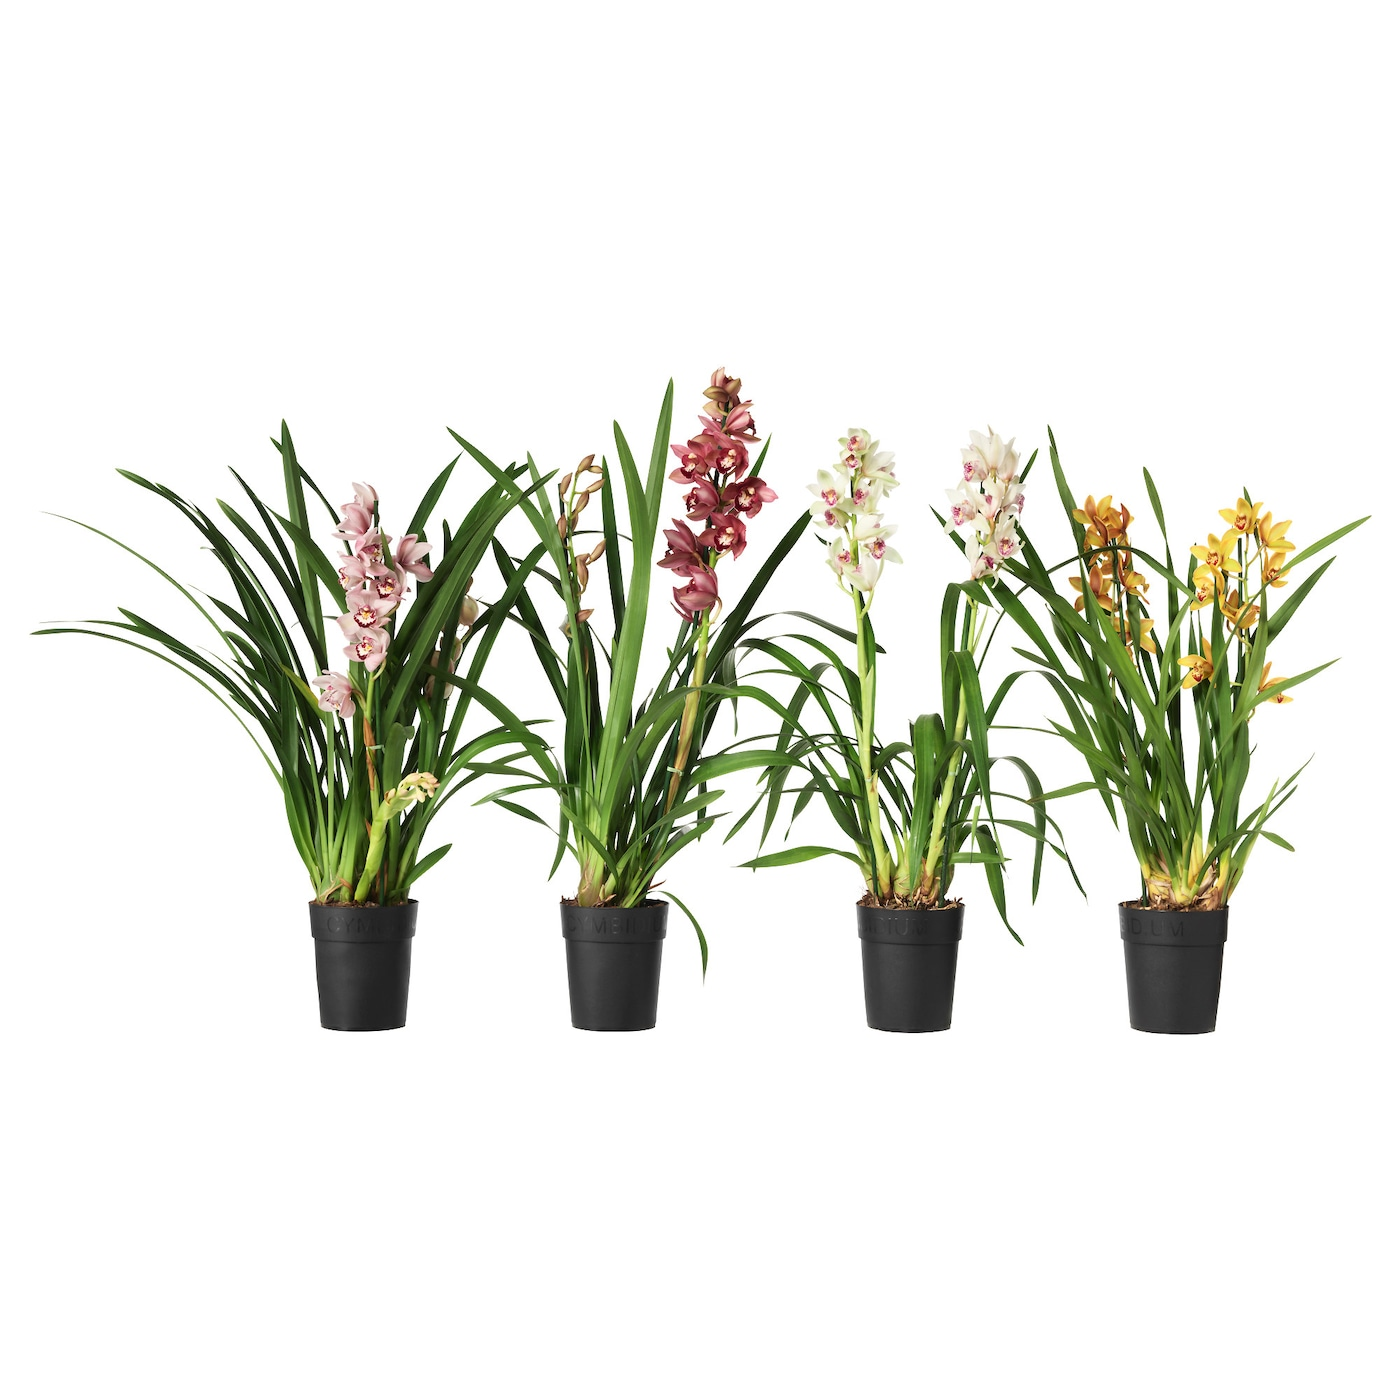 cymbidium potplant orchidee diverse kleuren 15 cm ikea. Black Bedroom Furniture Sets. Home Design Ideas